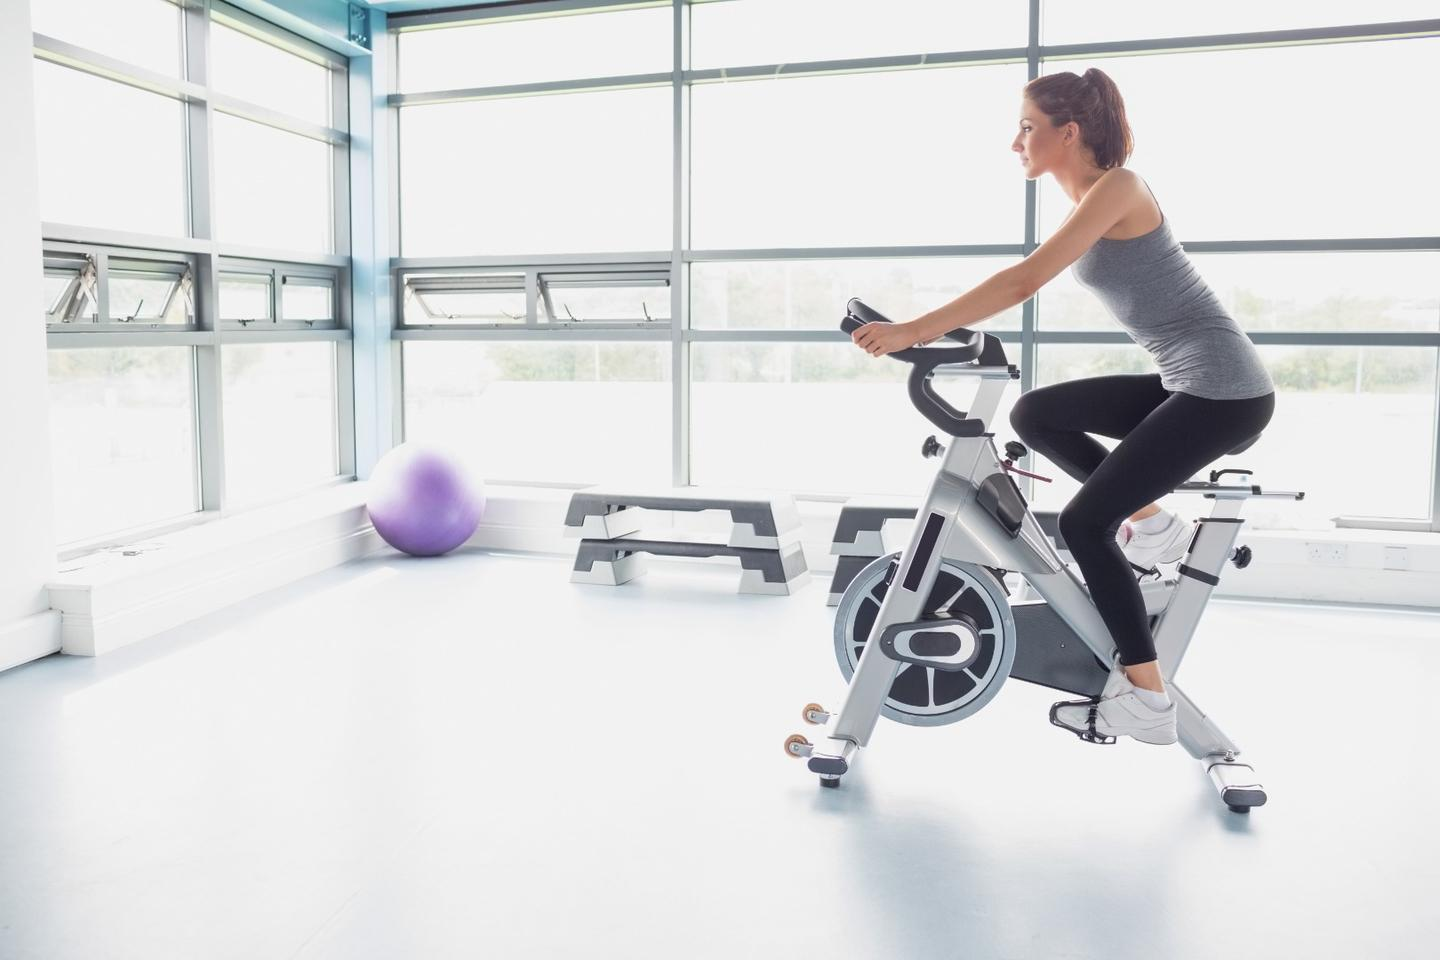 Sessions on an exercise bike helped to relieve women of depression – but particularly when the pace was assigned to them by another person